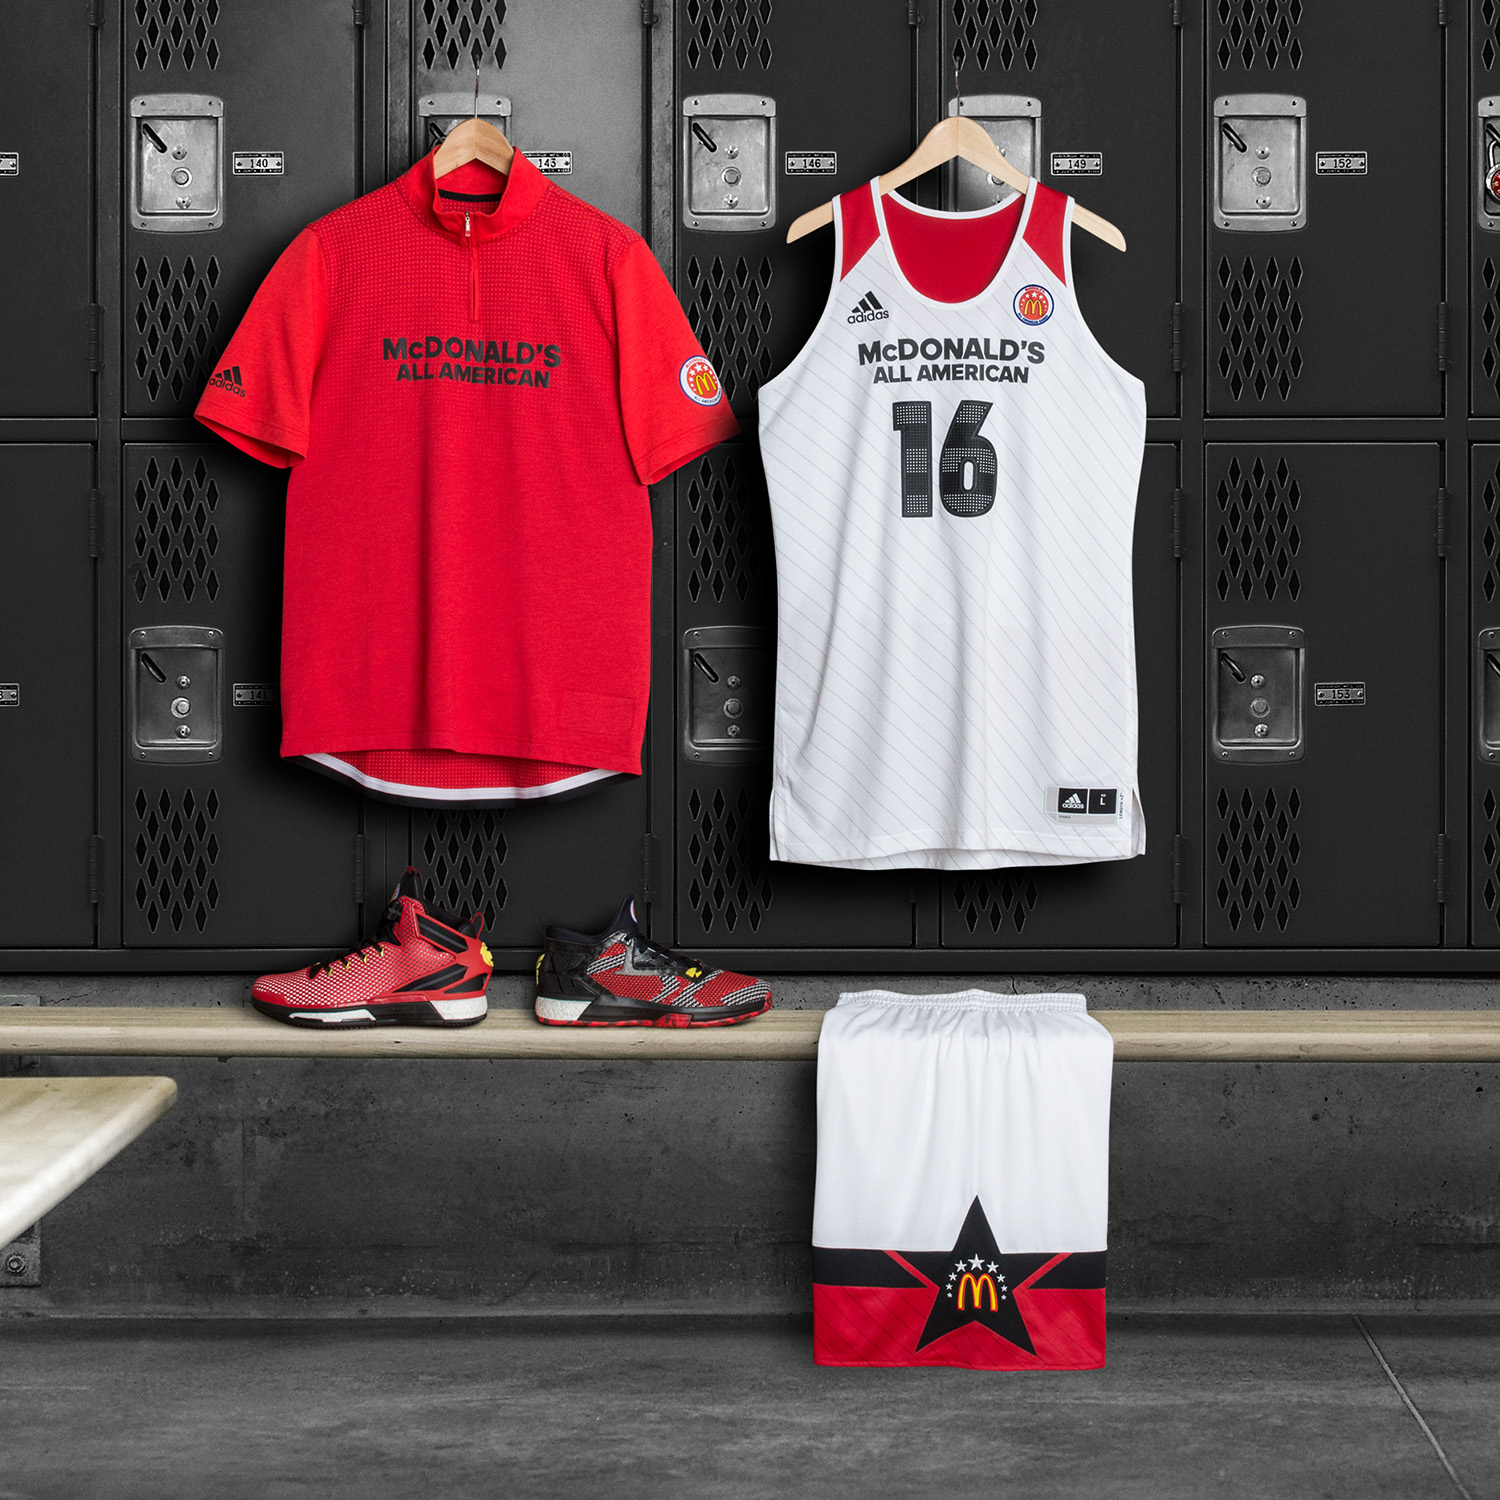 f071a9a7a adidas Unveils Uniform Collection for 2016 McDonald¹s All American Games-21